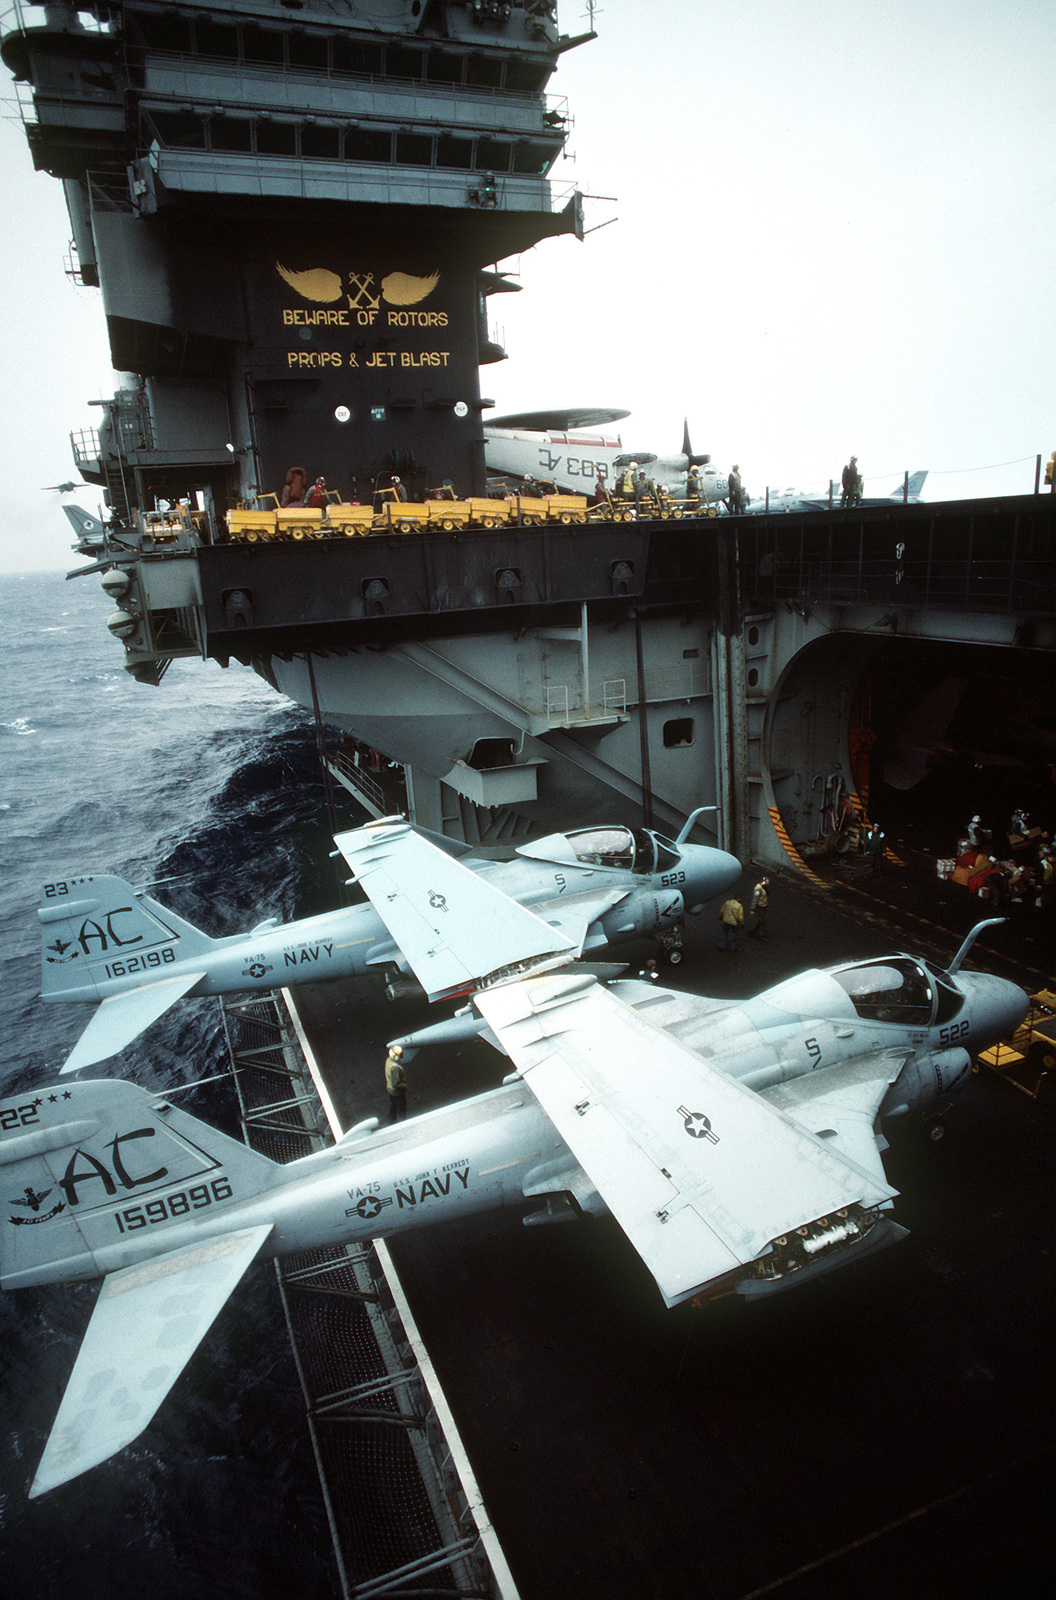 Two Attack Squadron 75 (VA-75) A-6E Intruder aircraft are secured on an elevator of the aircraft carrier USS JOHN F. KENNEDY (CV-67)